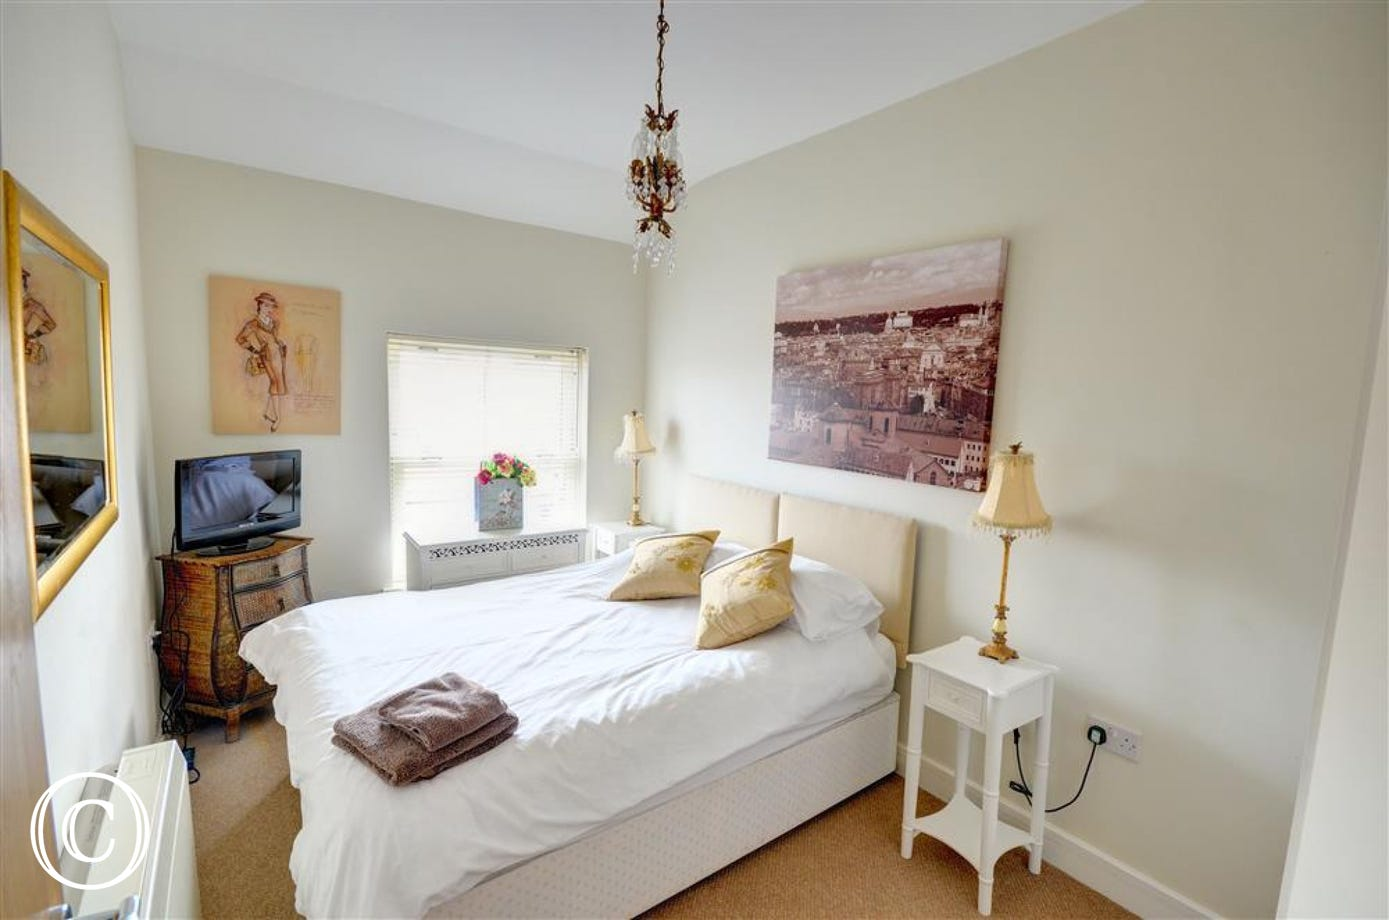 Bright and airy room with a double bed which can be split into two single beds if required.